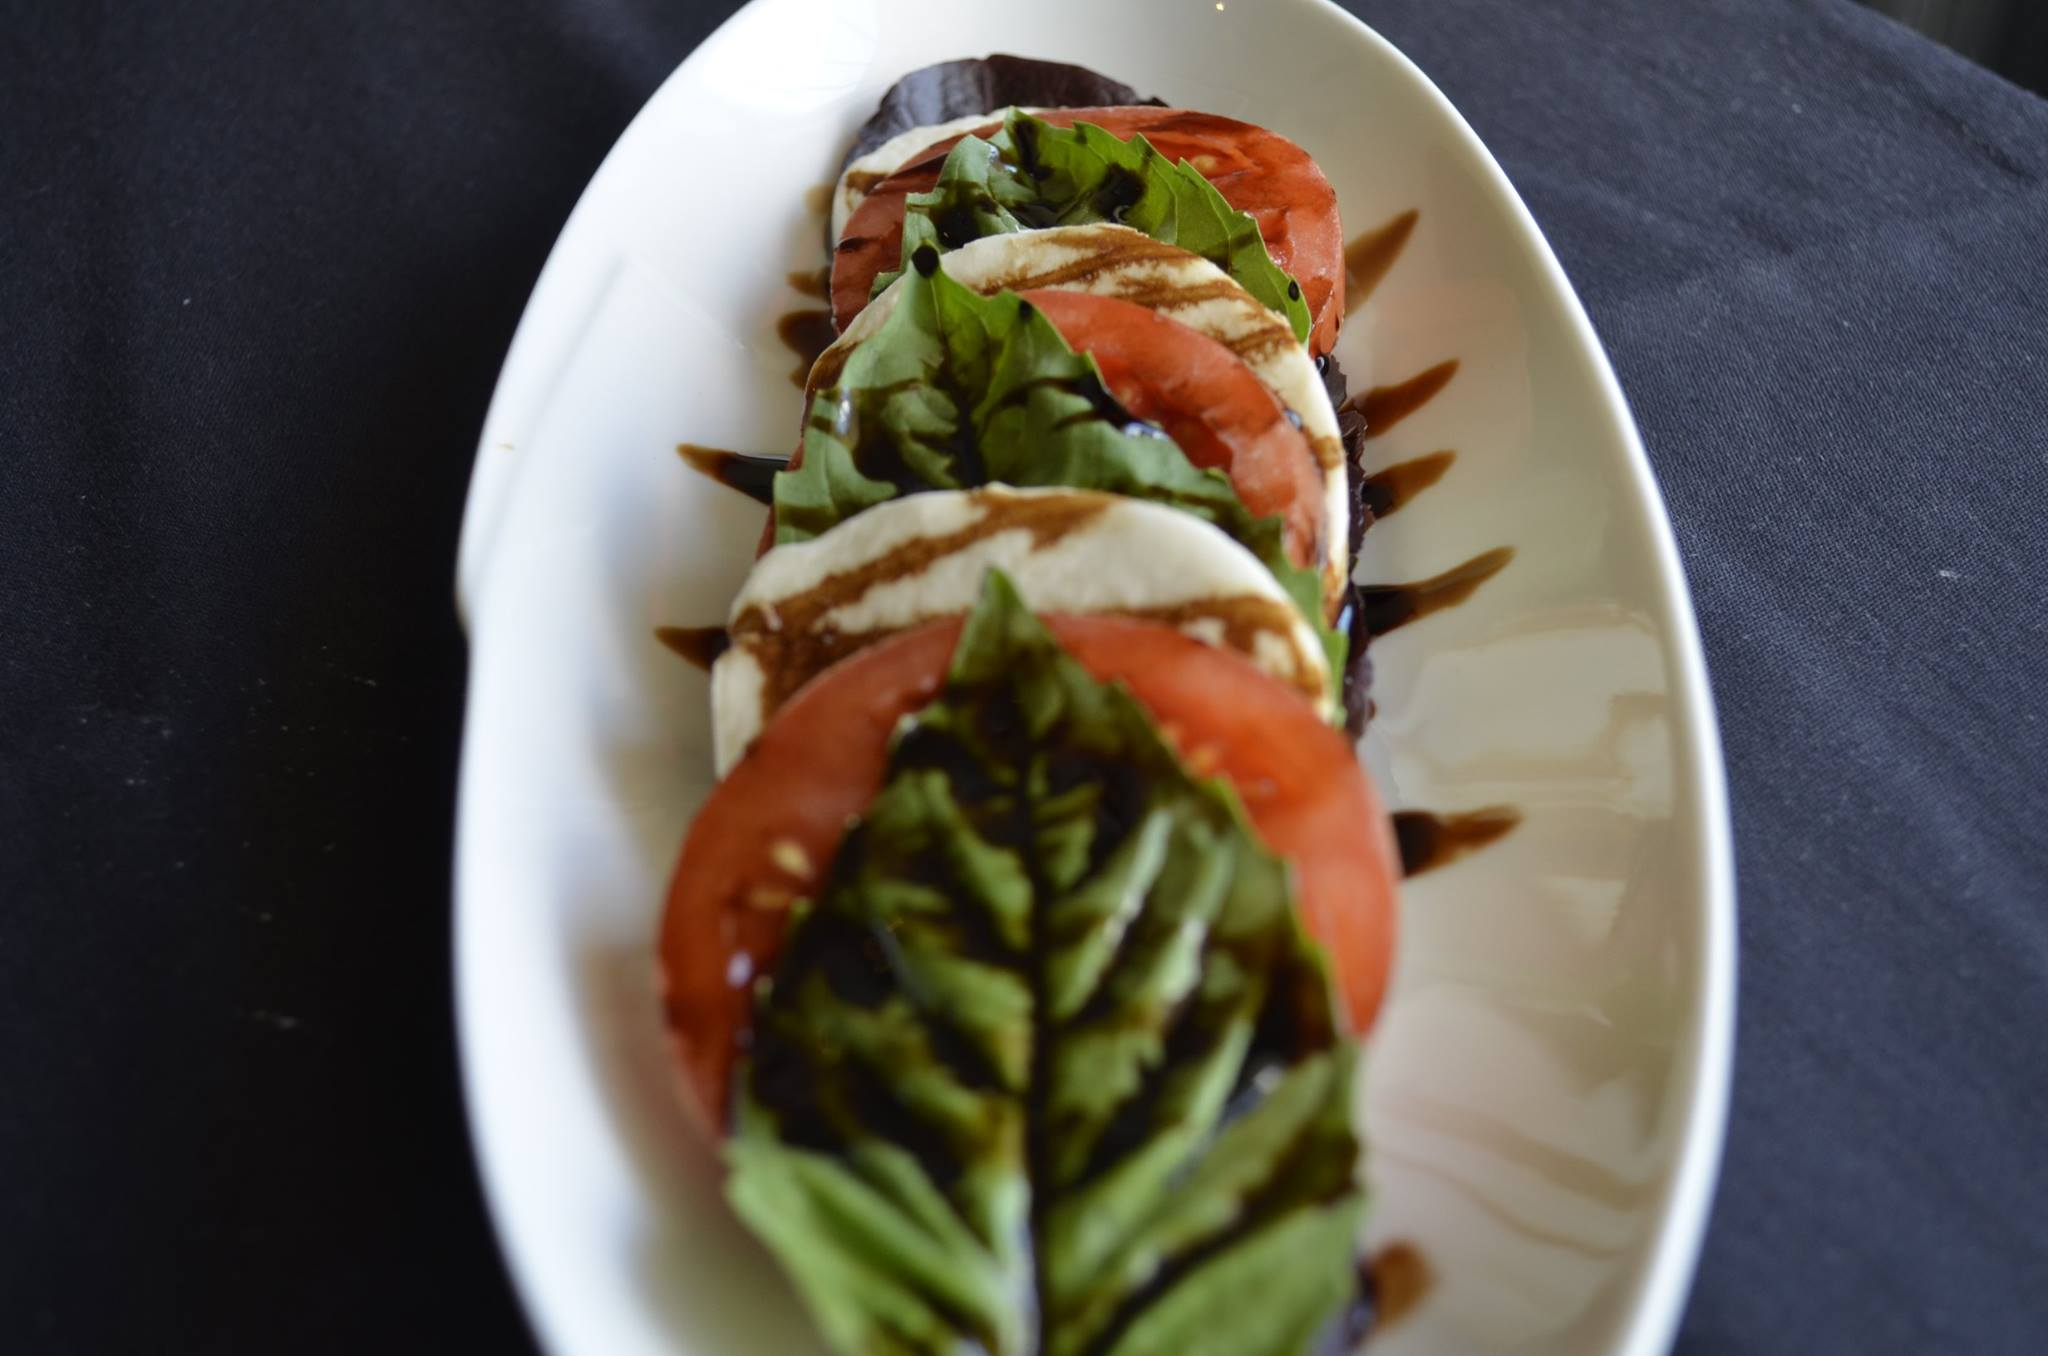 Tomato, basil and mozzarella salad on a plate